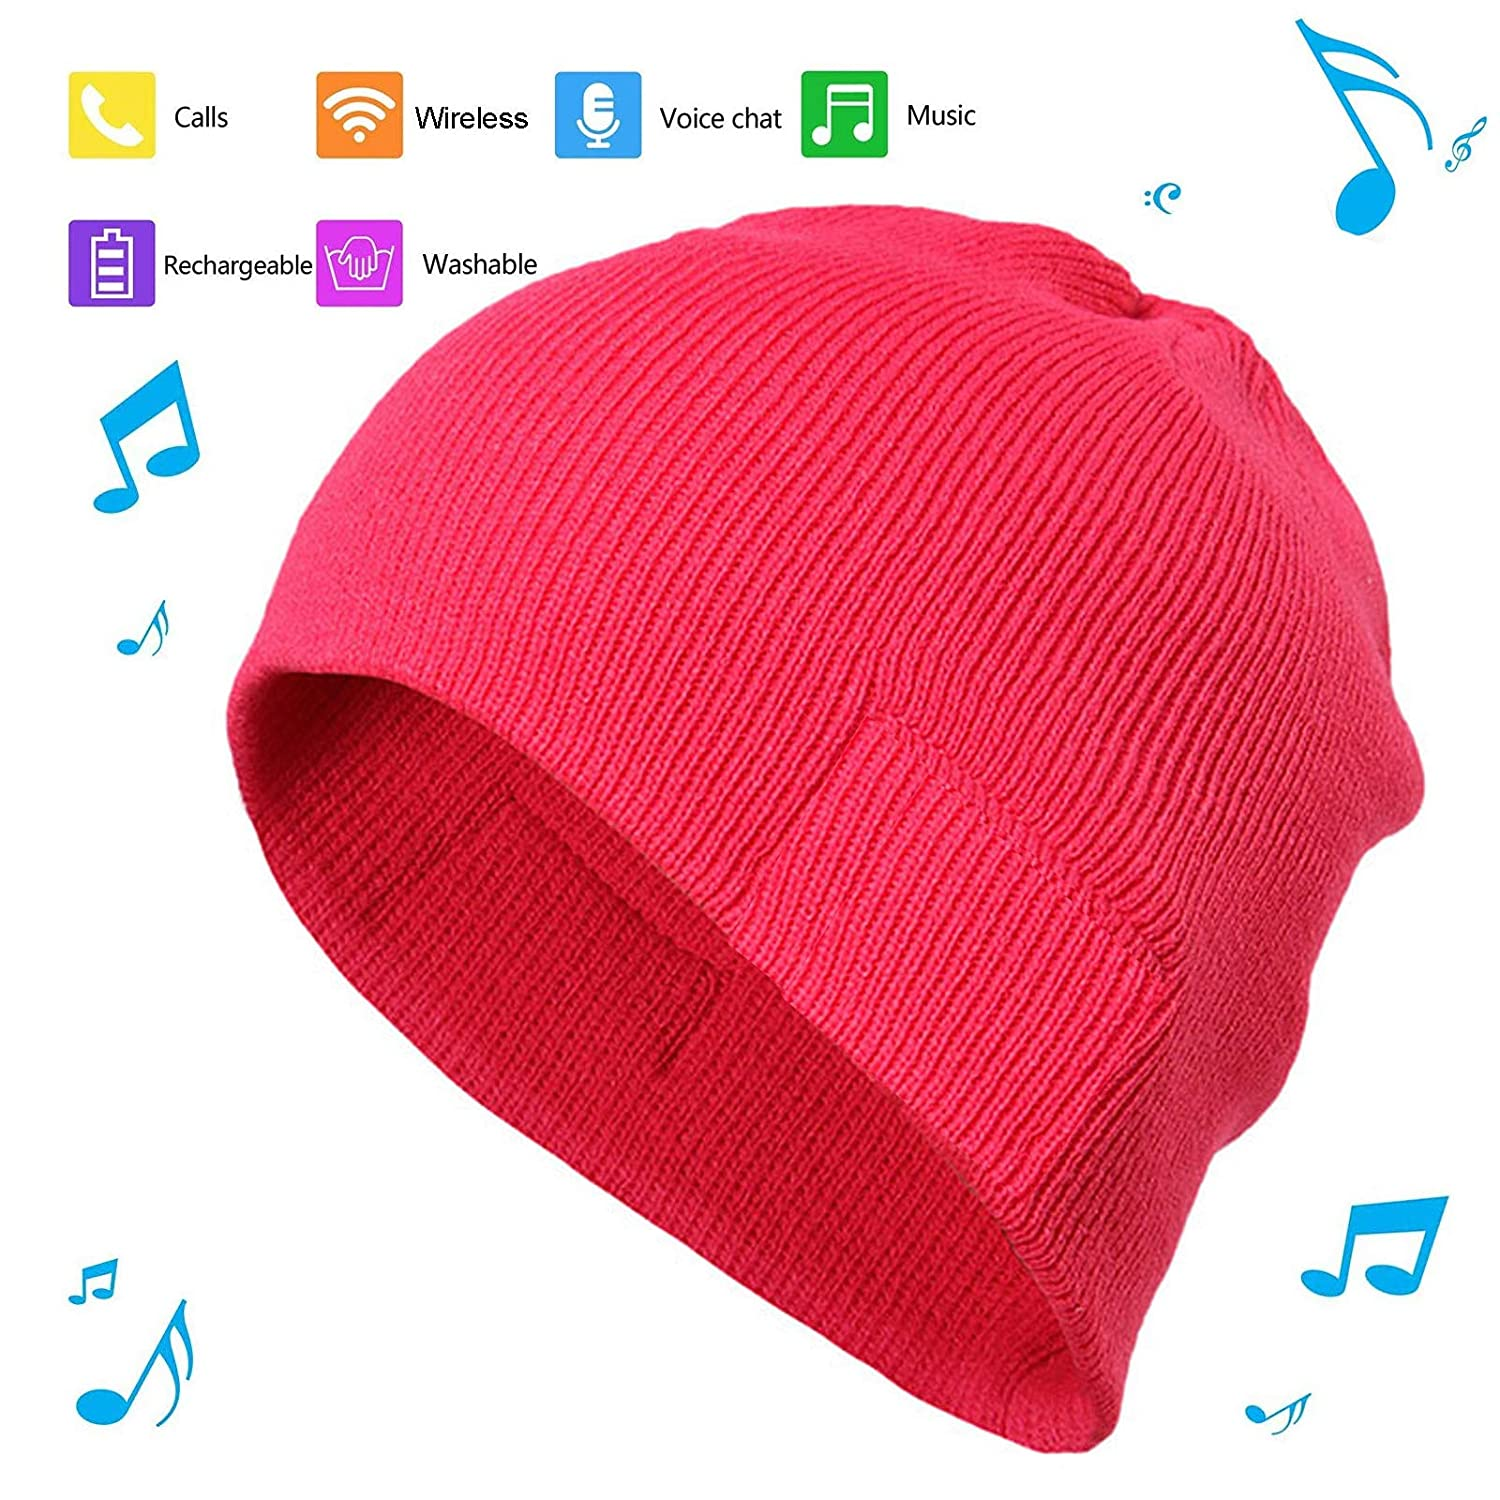 BGJOY Music Hat Wireless Beanie Smart Hat Headphone Headset Earphone Winter Warm Knit Hats Cap with Mic and HD Speakers Gifts for Outdoors Family Thanksgiving Christmas Unisex (Red)